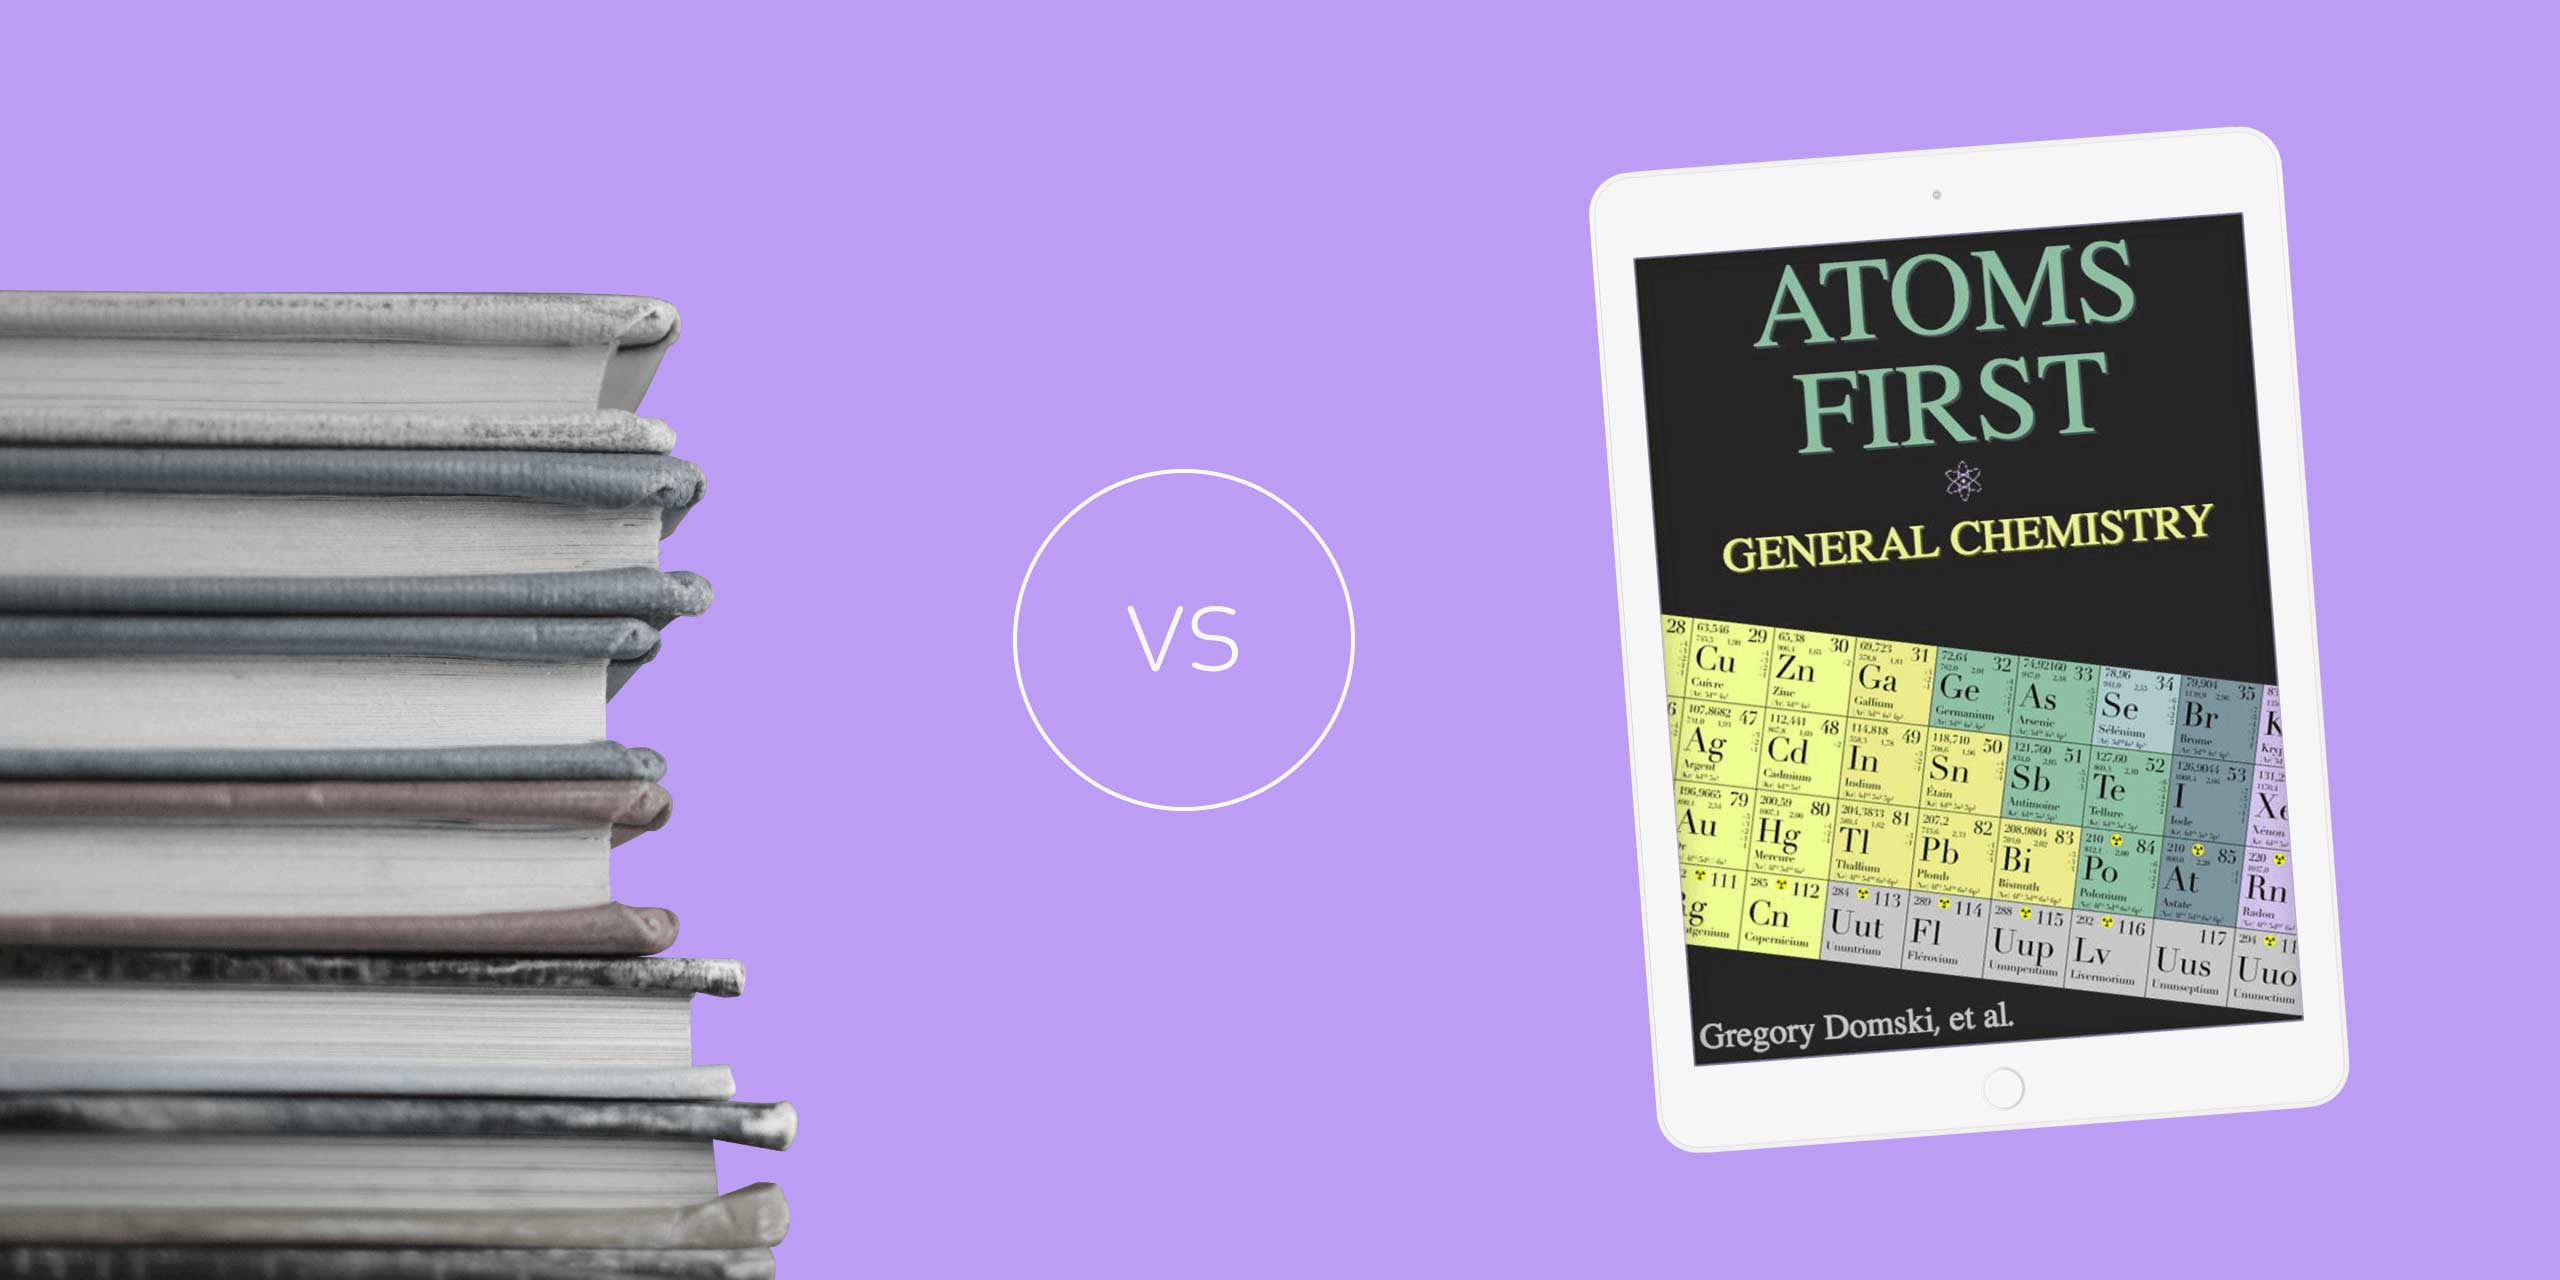 Atoms First General Chemistry Textbooks: Which Is The Best?